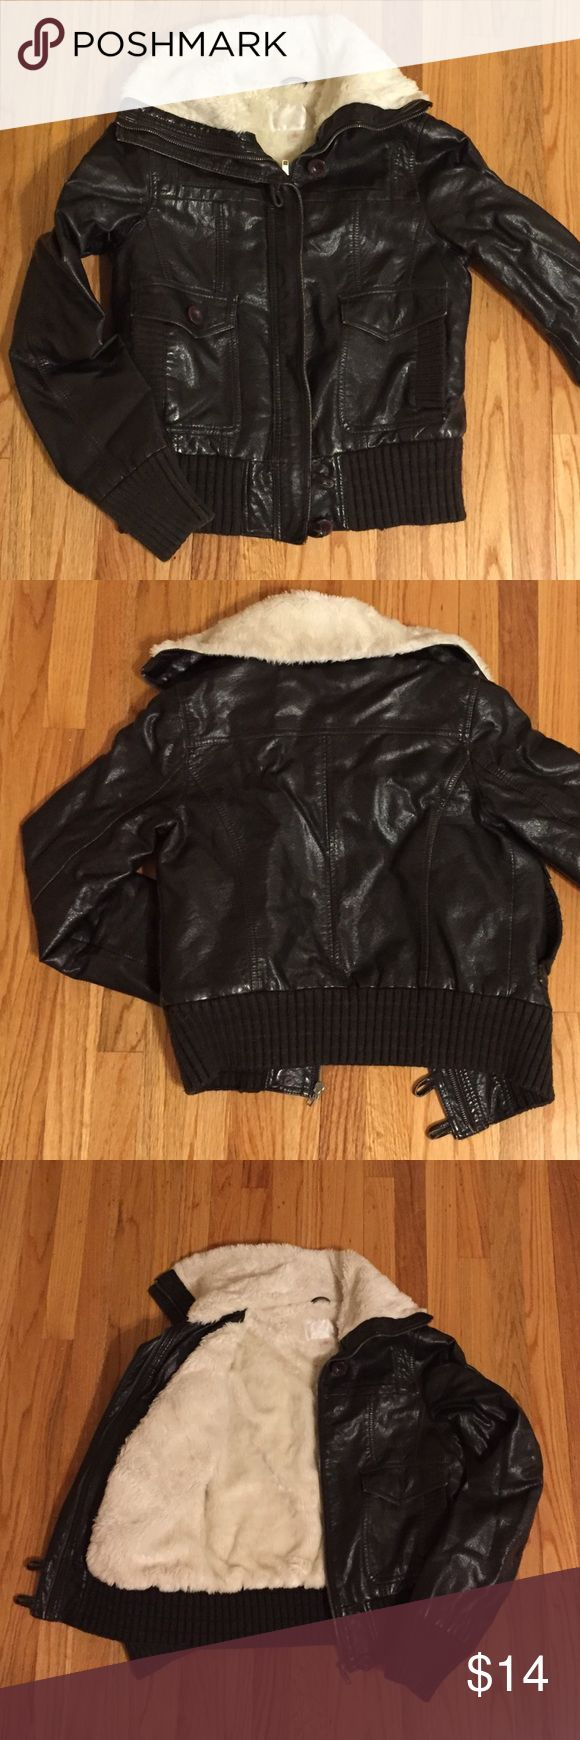 Sweet Cruelty-Free Bomber Jacket This pleather jacket is full Bomber style and totally lined with soft white faux fur. Dark brown, worn effect leather (like a broken in baseball mit!) Missing one button but not necessary for use or easily detectable. Fits size 0-4 best. Xhilaration Jackets & Coats